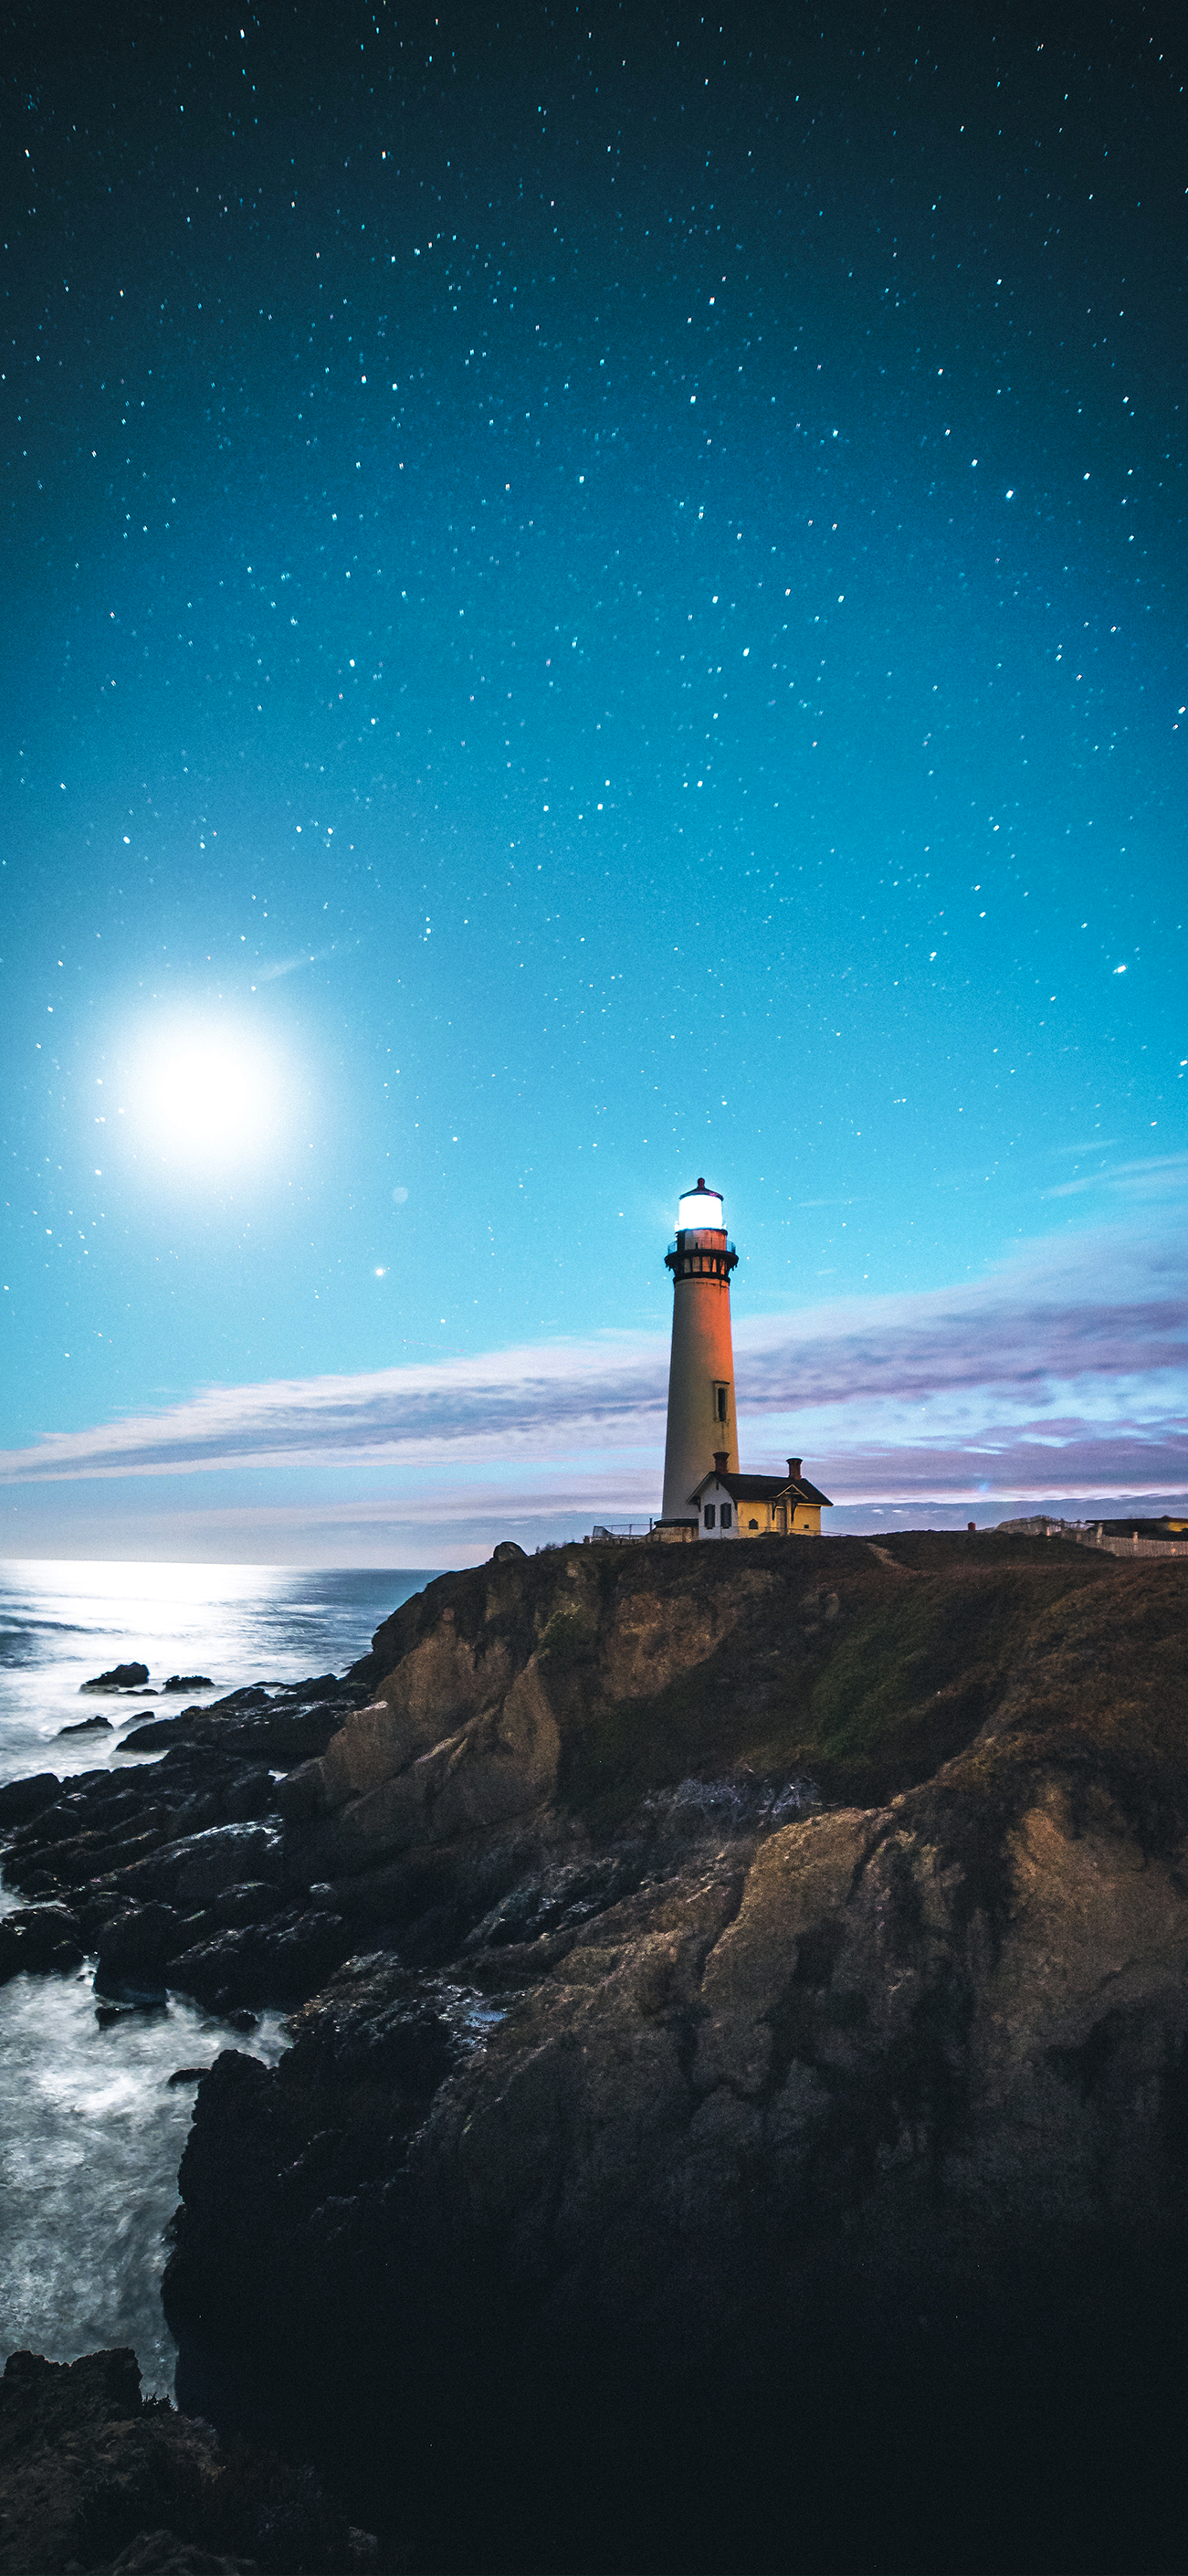 Lighthouse wallpapers central - Lighthouse live wallpaper ...